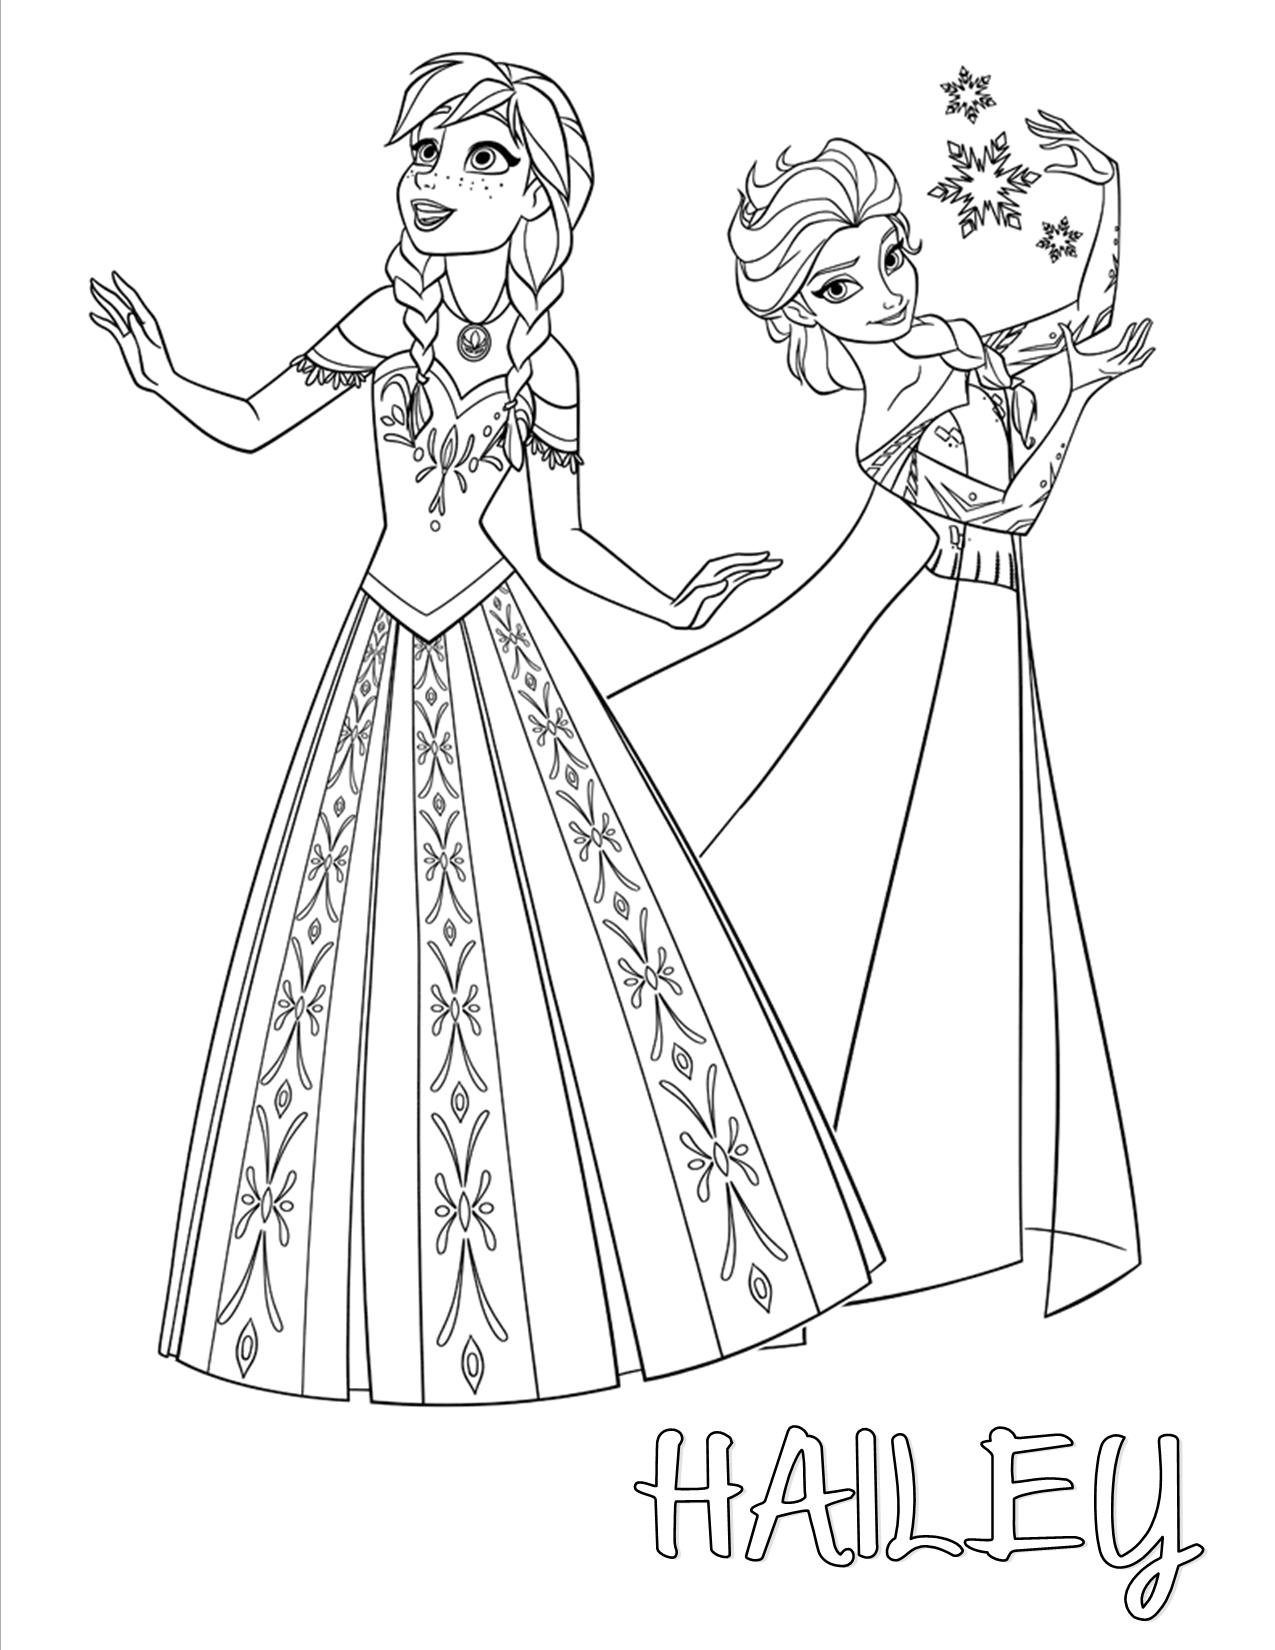 Elsa clipart anna template. Frozen and color your